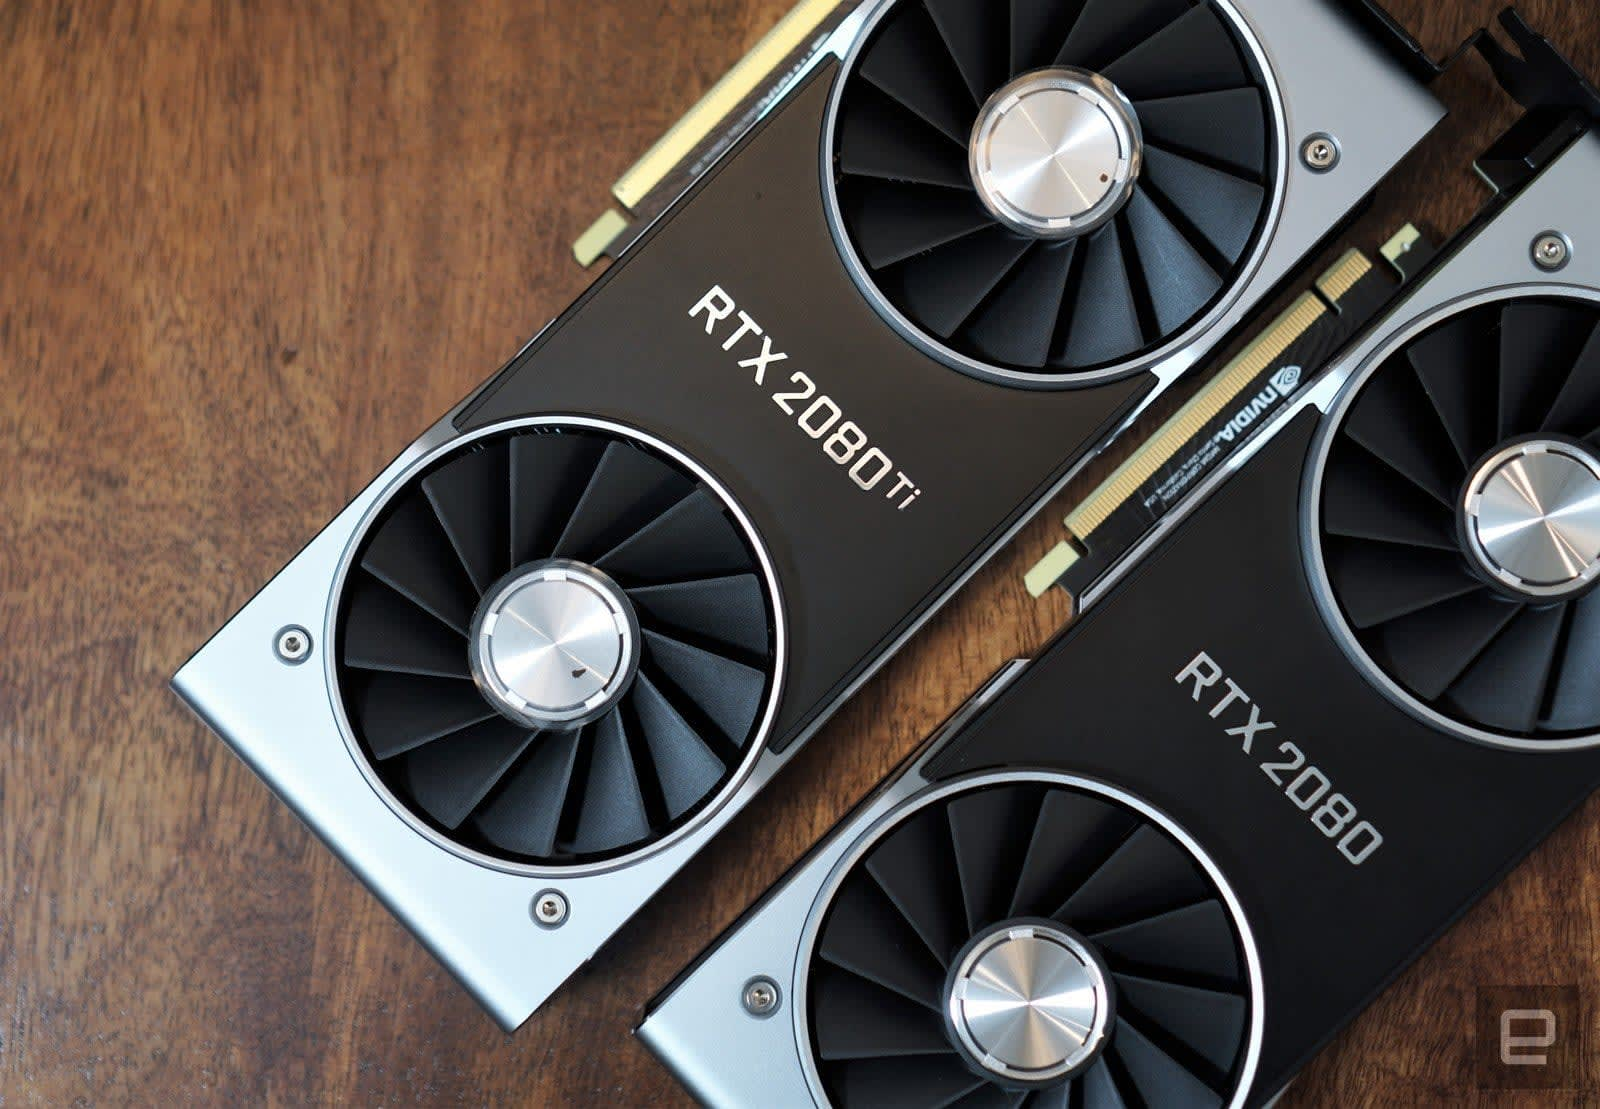 Geek out over the NVIDIA RTX 2080 or 2080 Ti